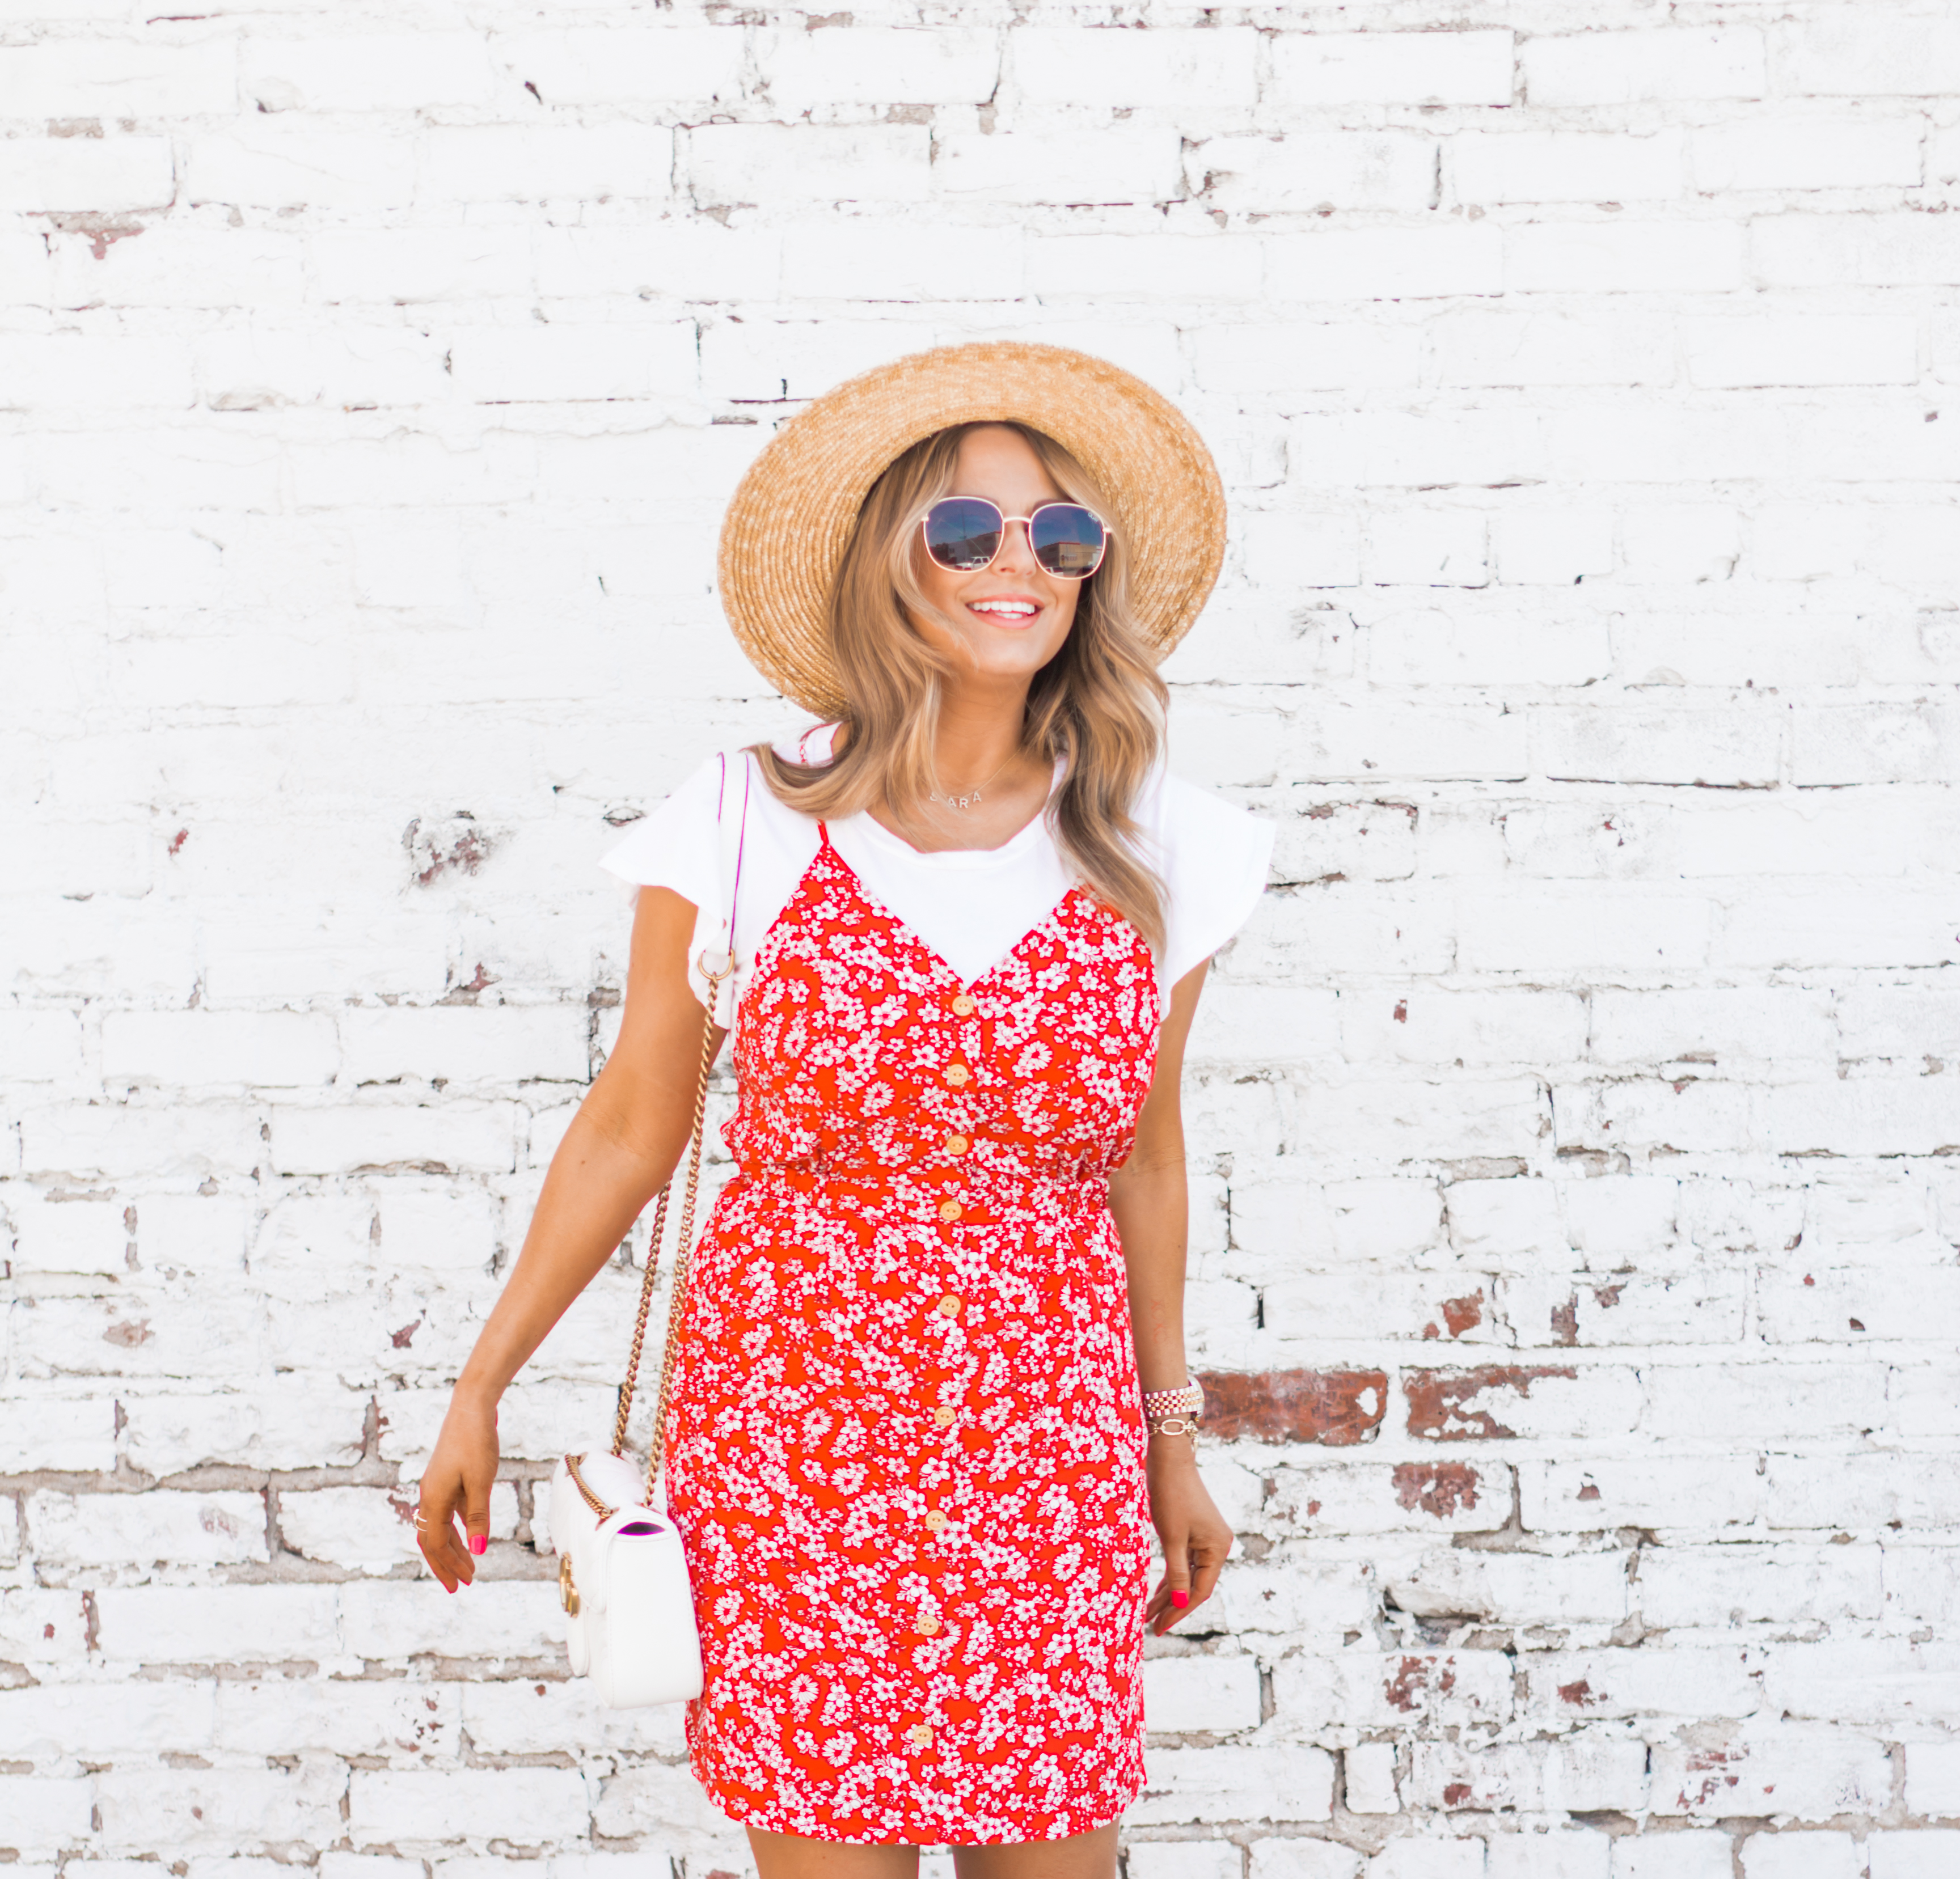 red-sundress-spring-summer-dress-floral dress-women's fashion- spring fashion-summer fashion-brixton hat-white booties-Omaha blogger-sabby style-13